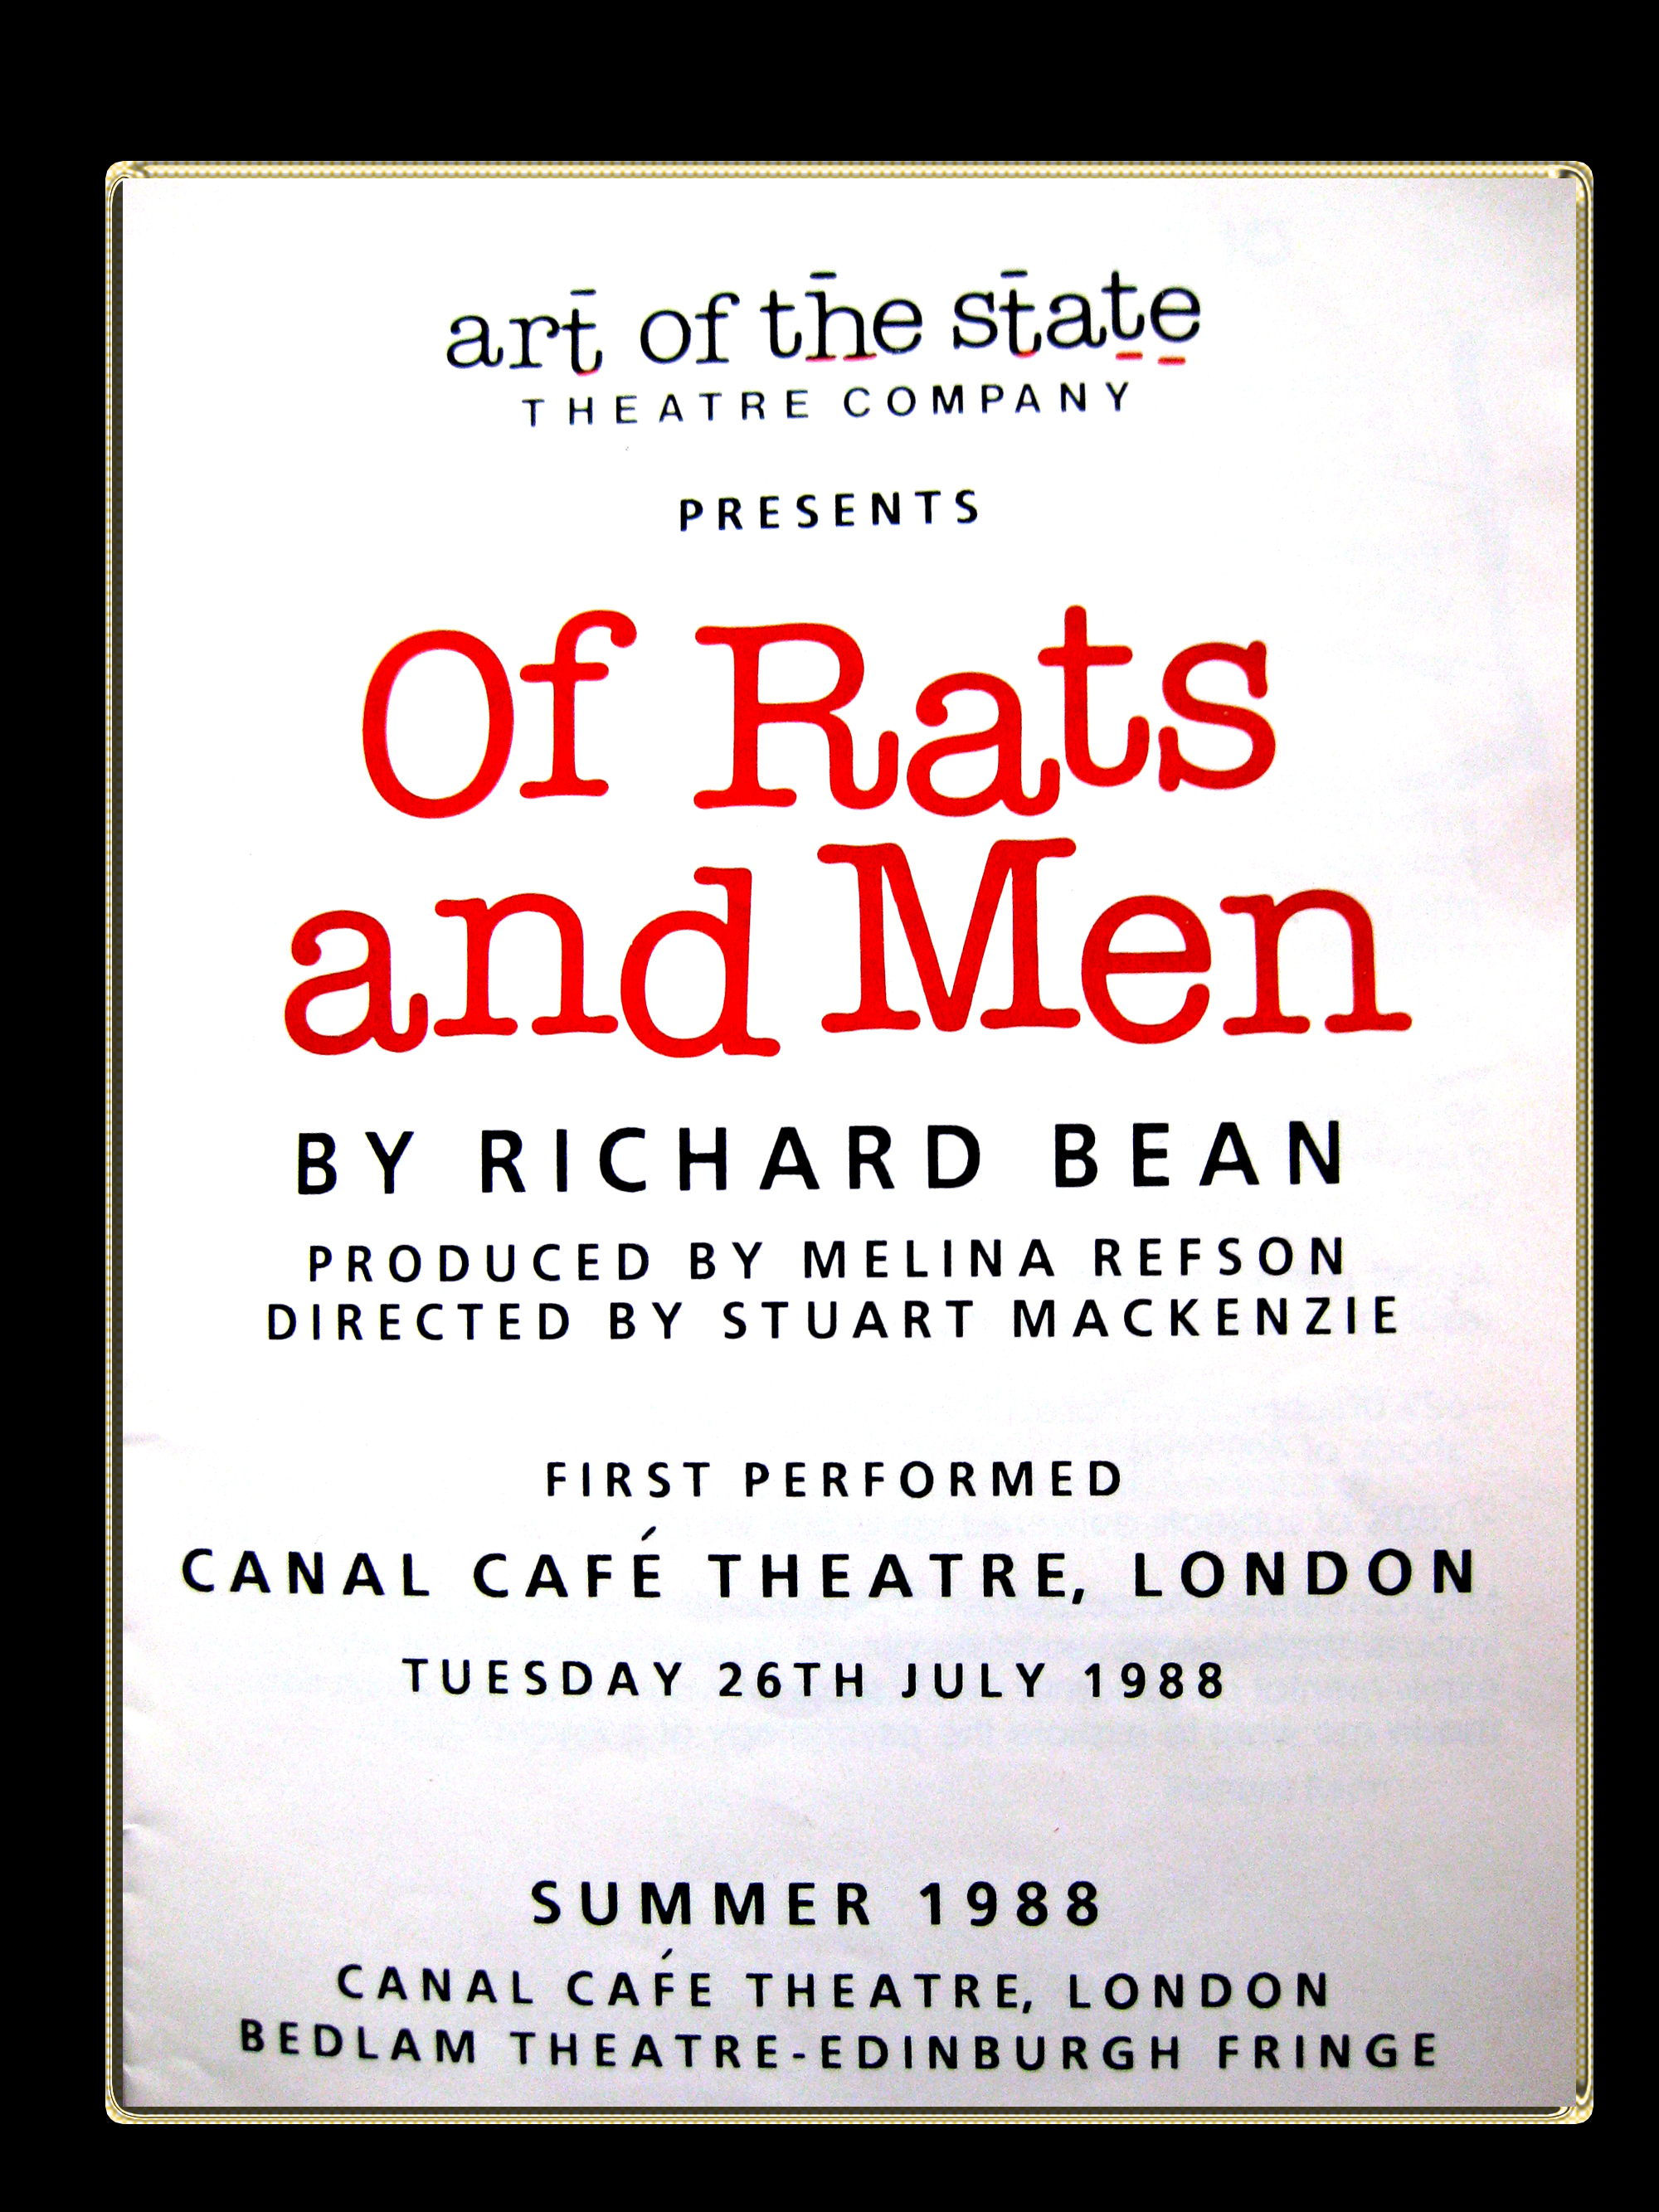 art of the state programme